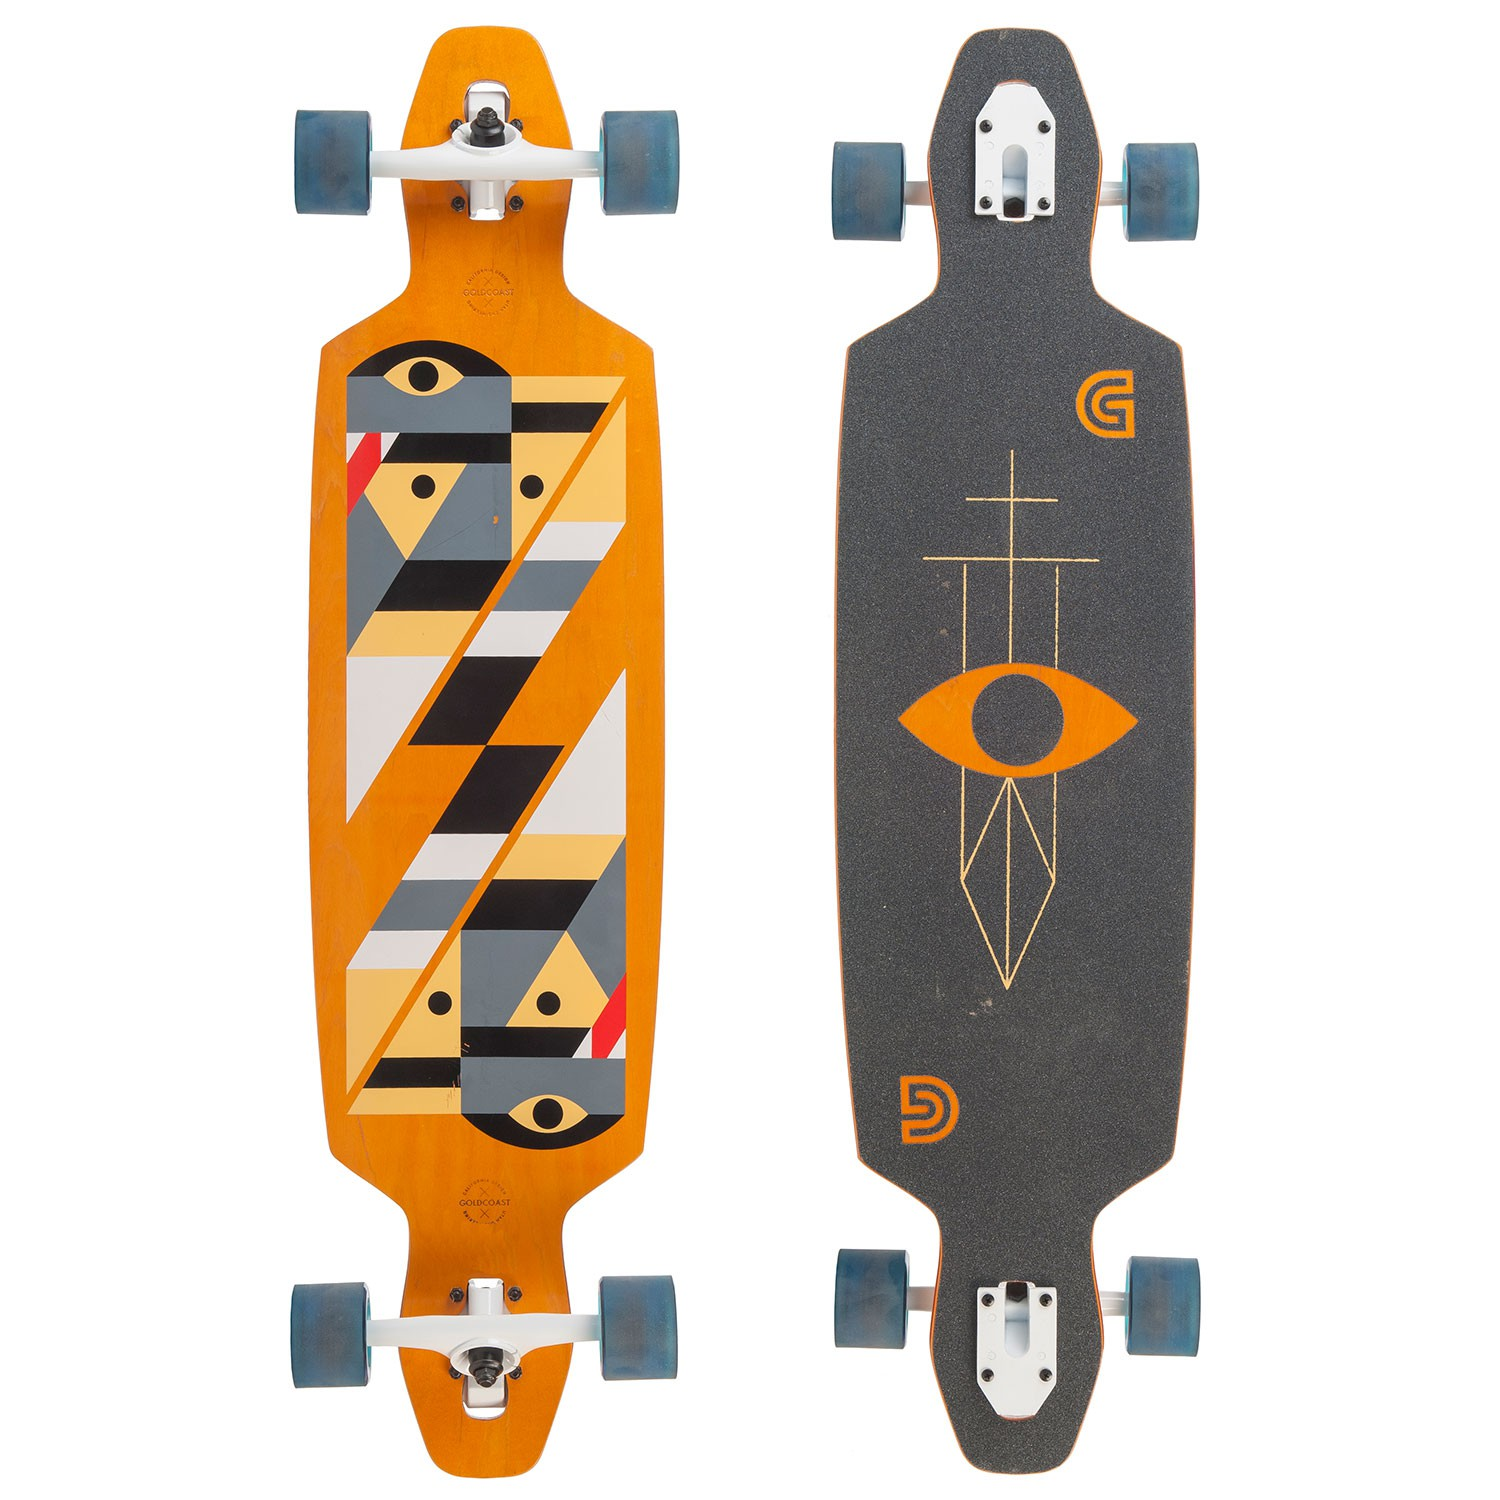 "Longboard Goldcoast Serpentagram Drop Through yellow vel.40"" / 102 cm 16 + doručení do 24 hodin"